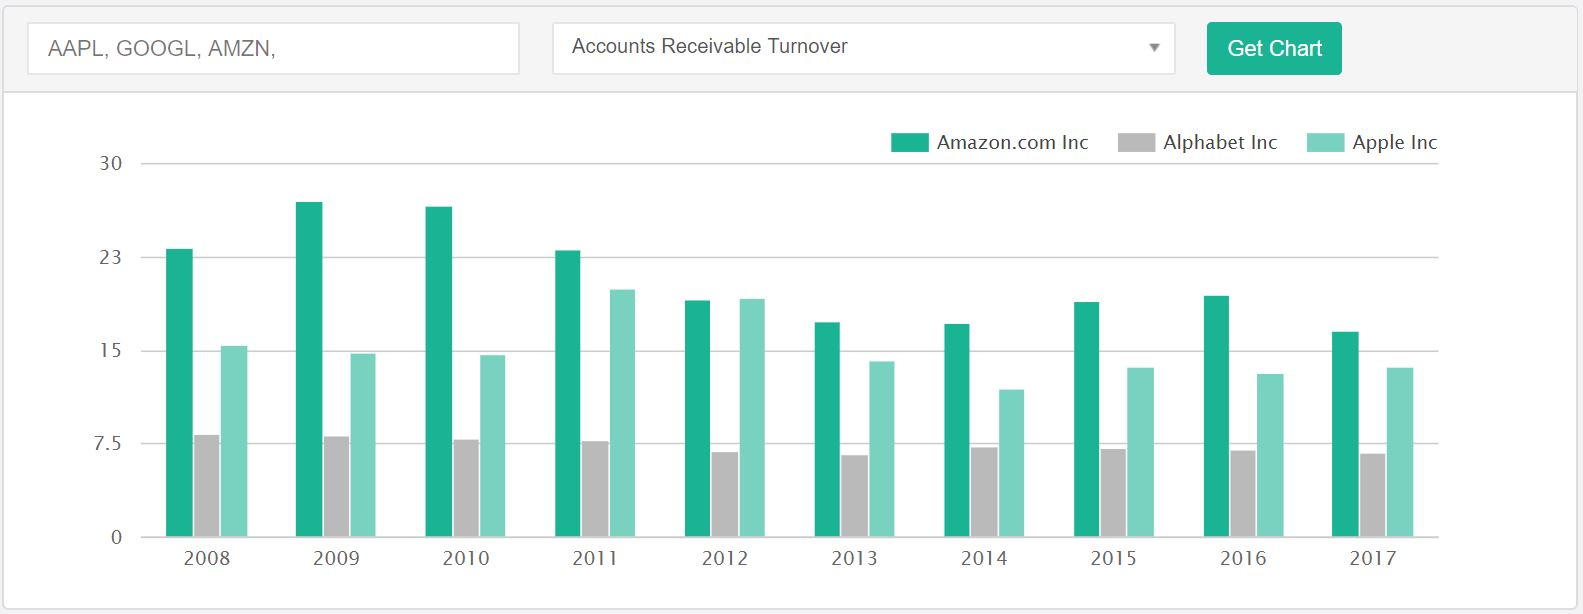 Comparison between Apple Inc., Amazon, and Google's accounts receivable turnover ratio using the DiscoverCI.com Charting Tool